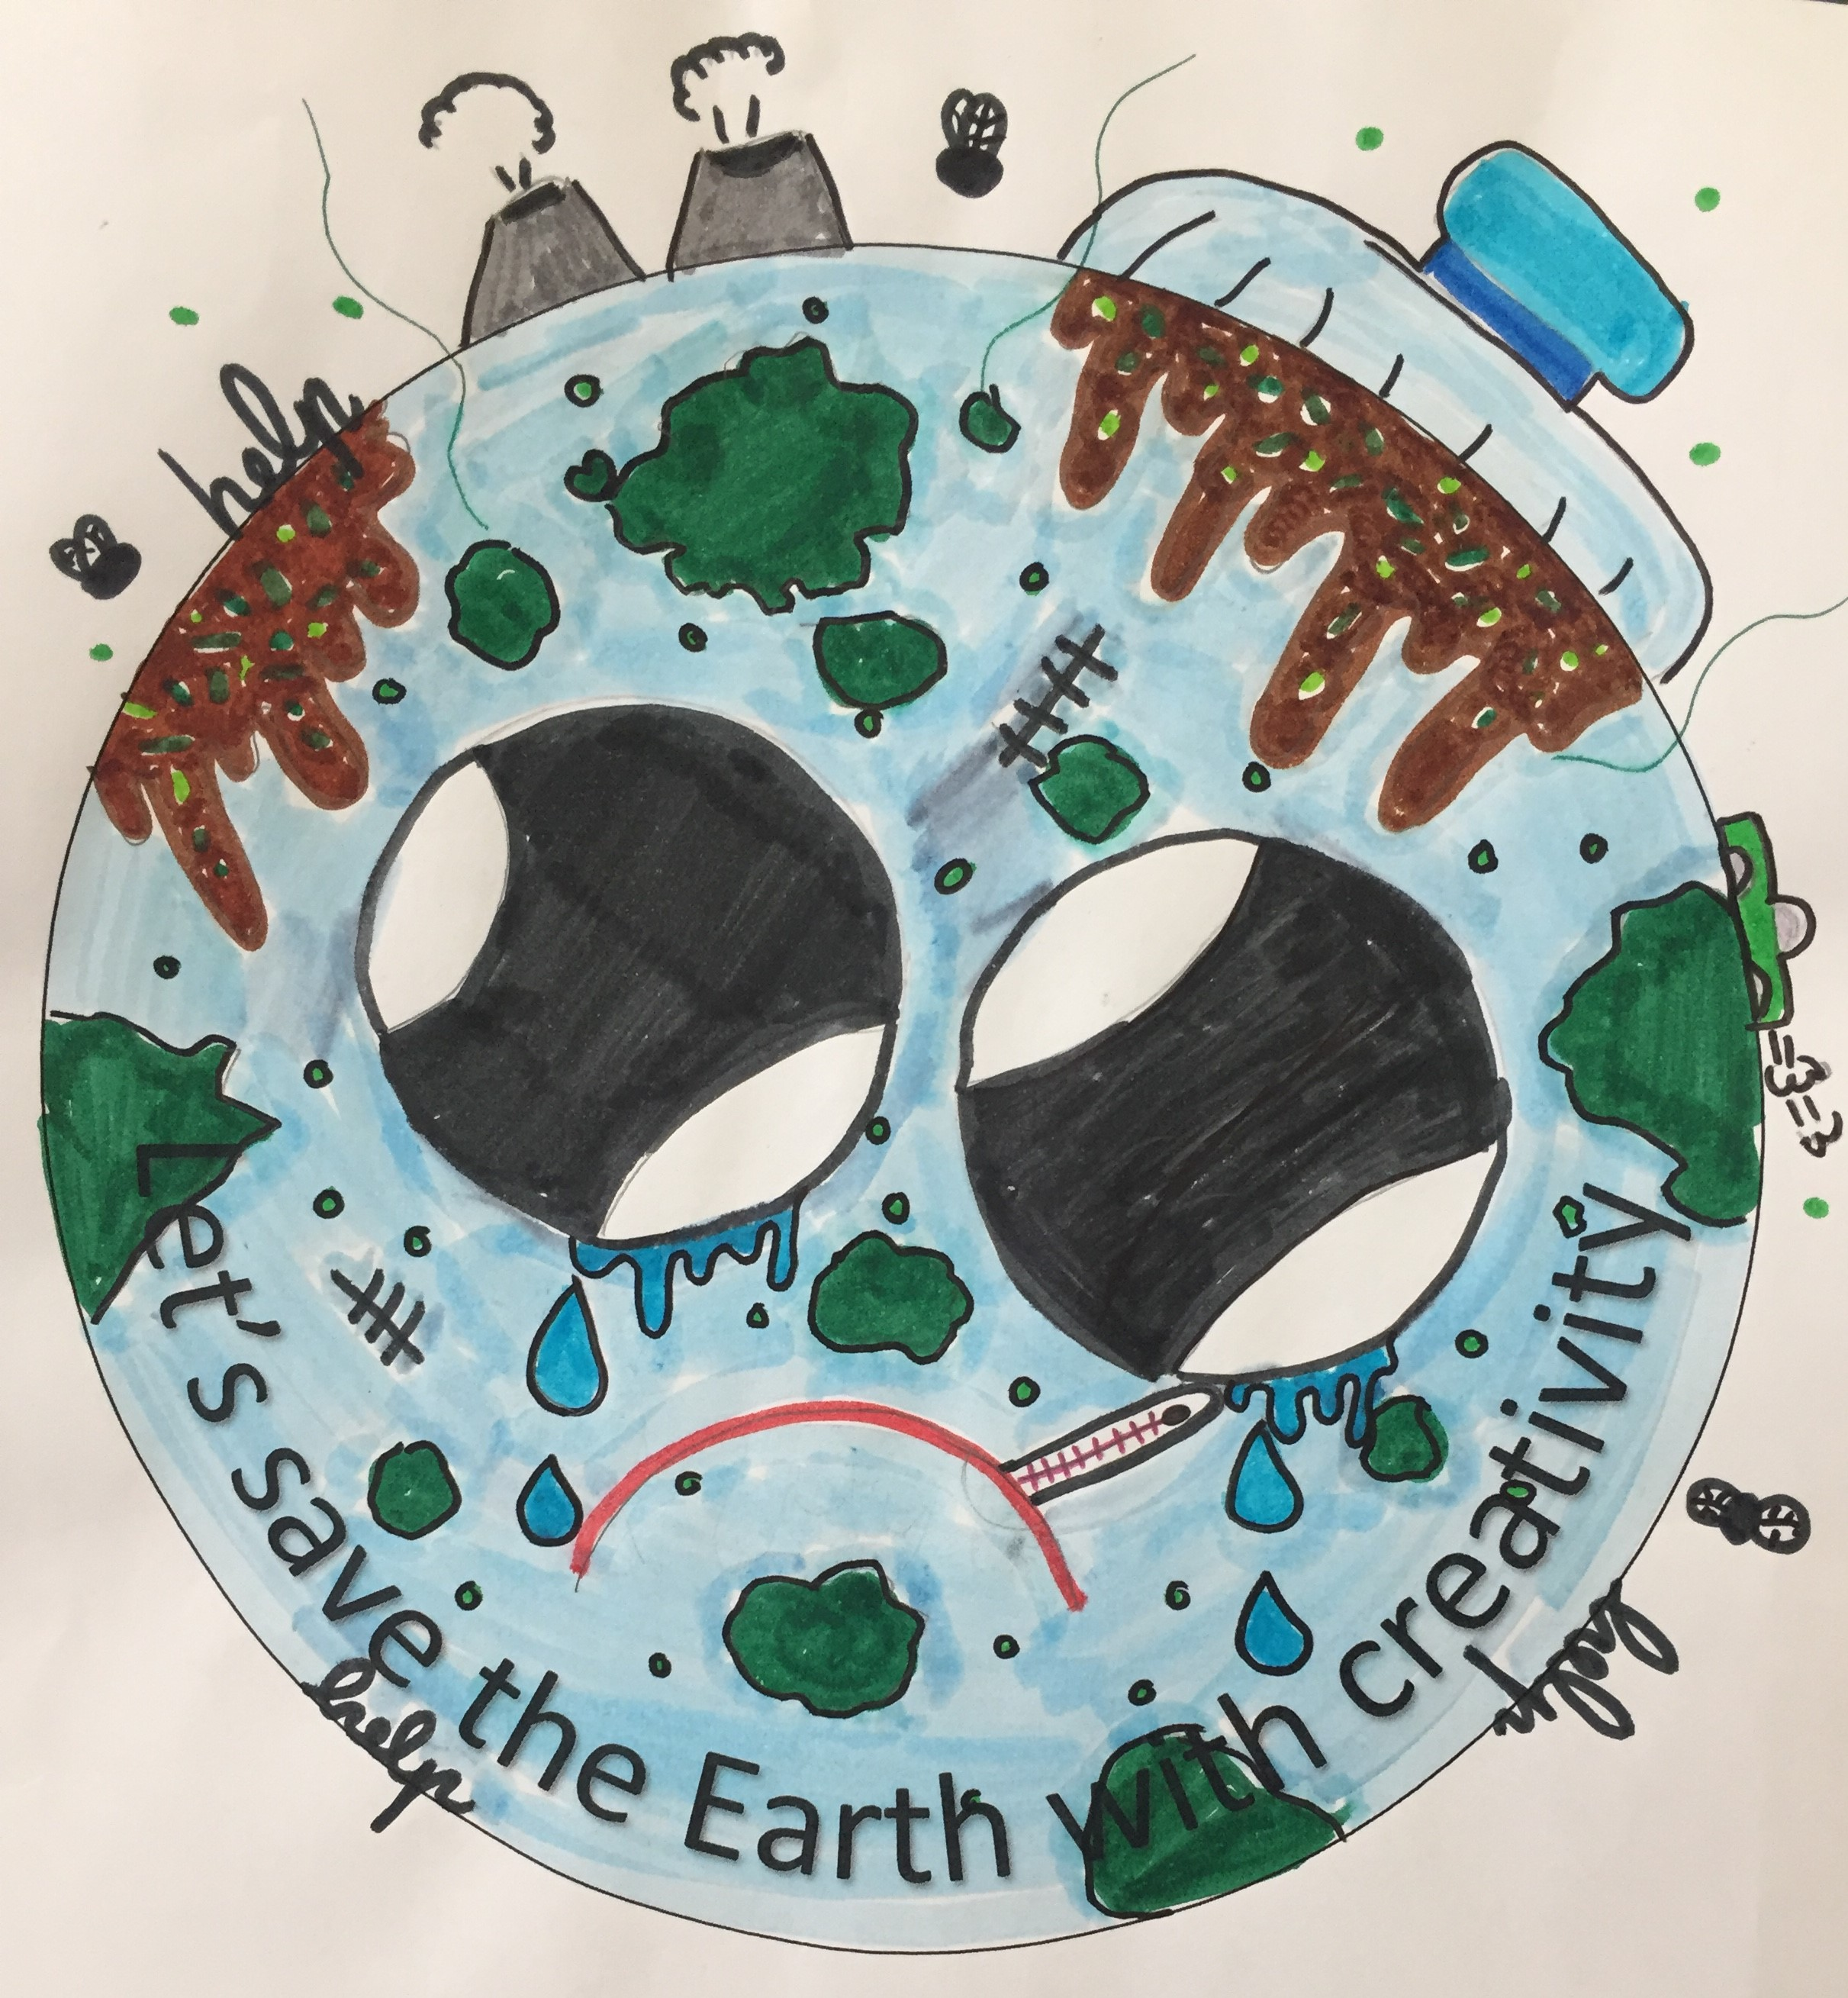 """Projeto """"Let's save the Earth with creativity"""""""